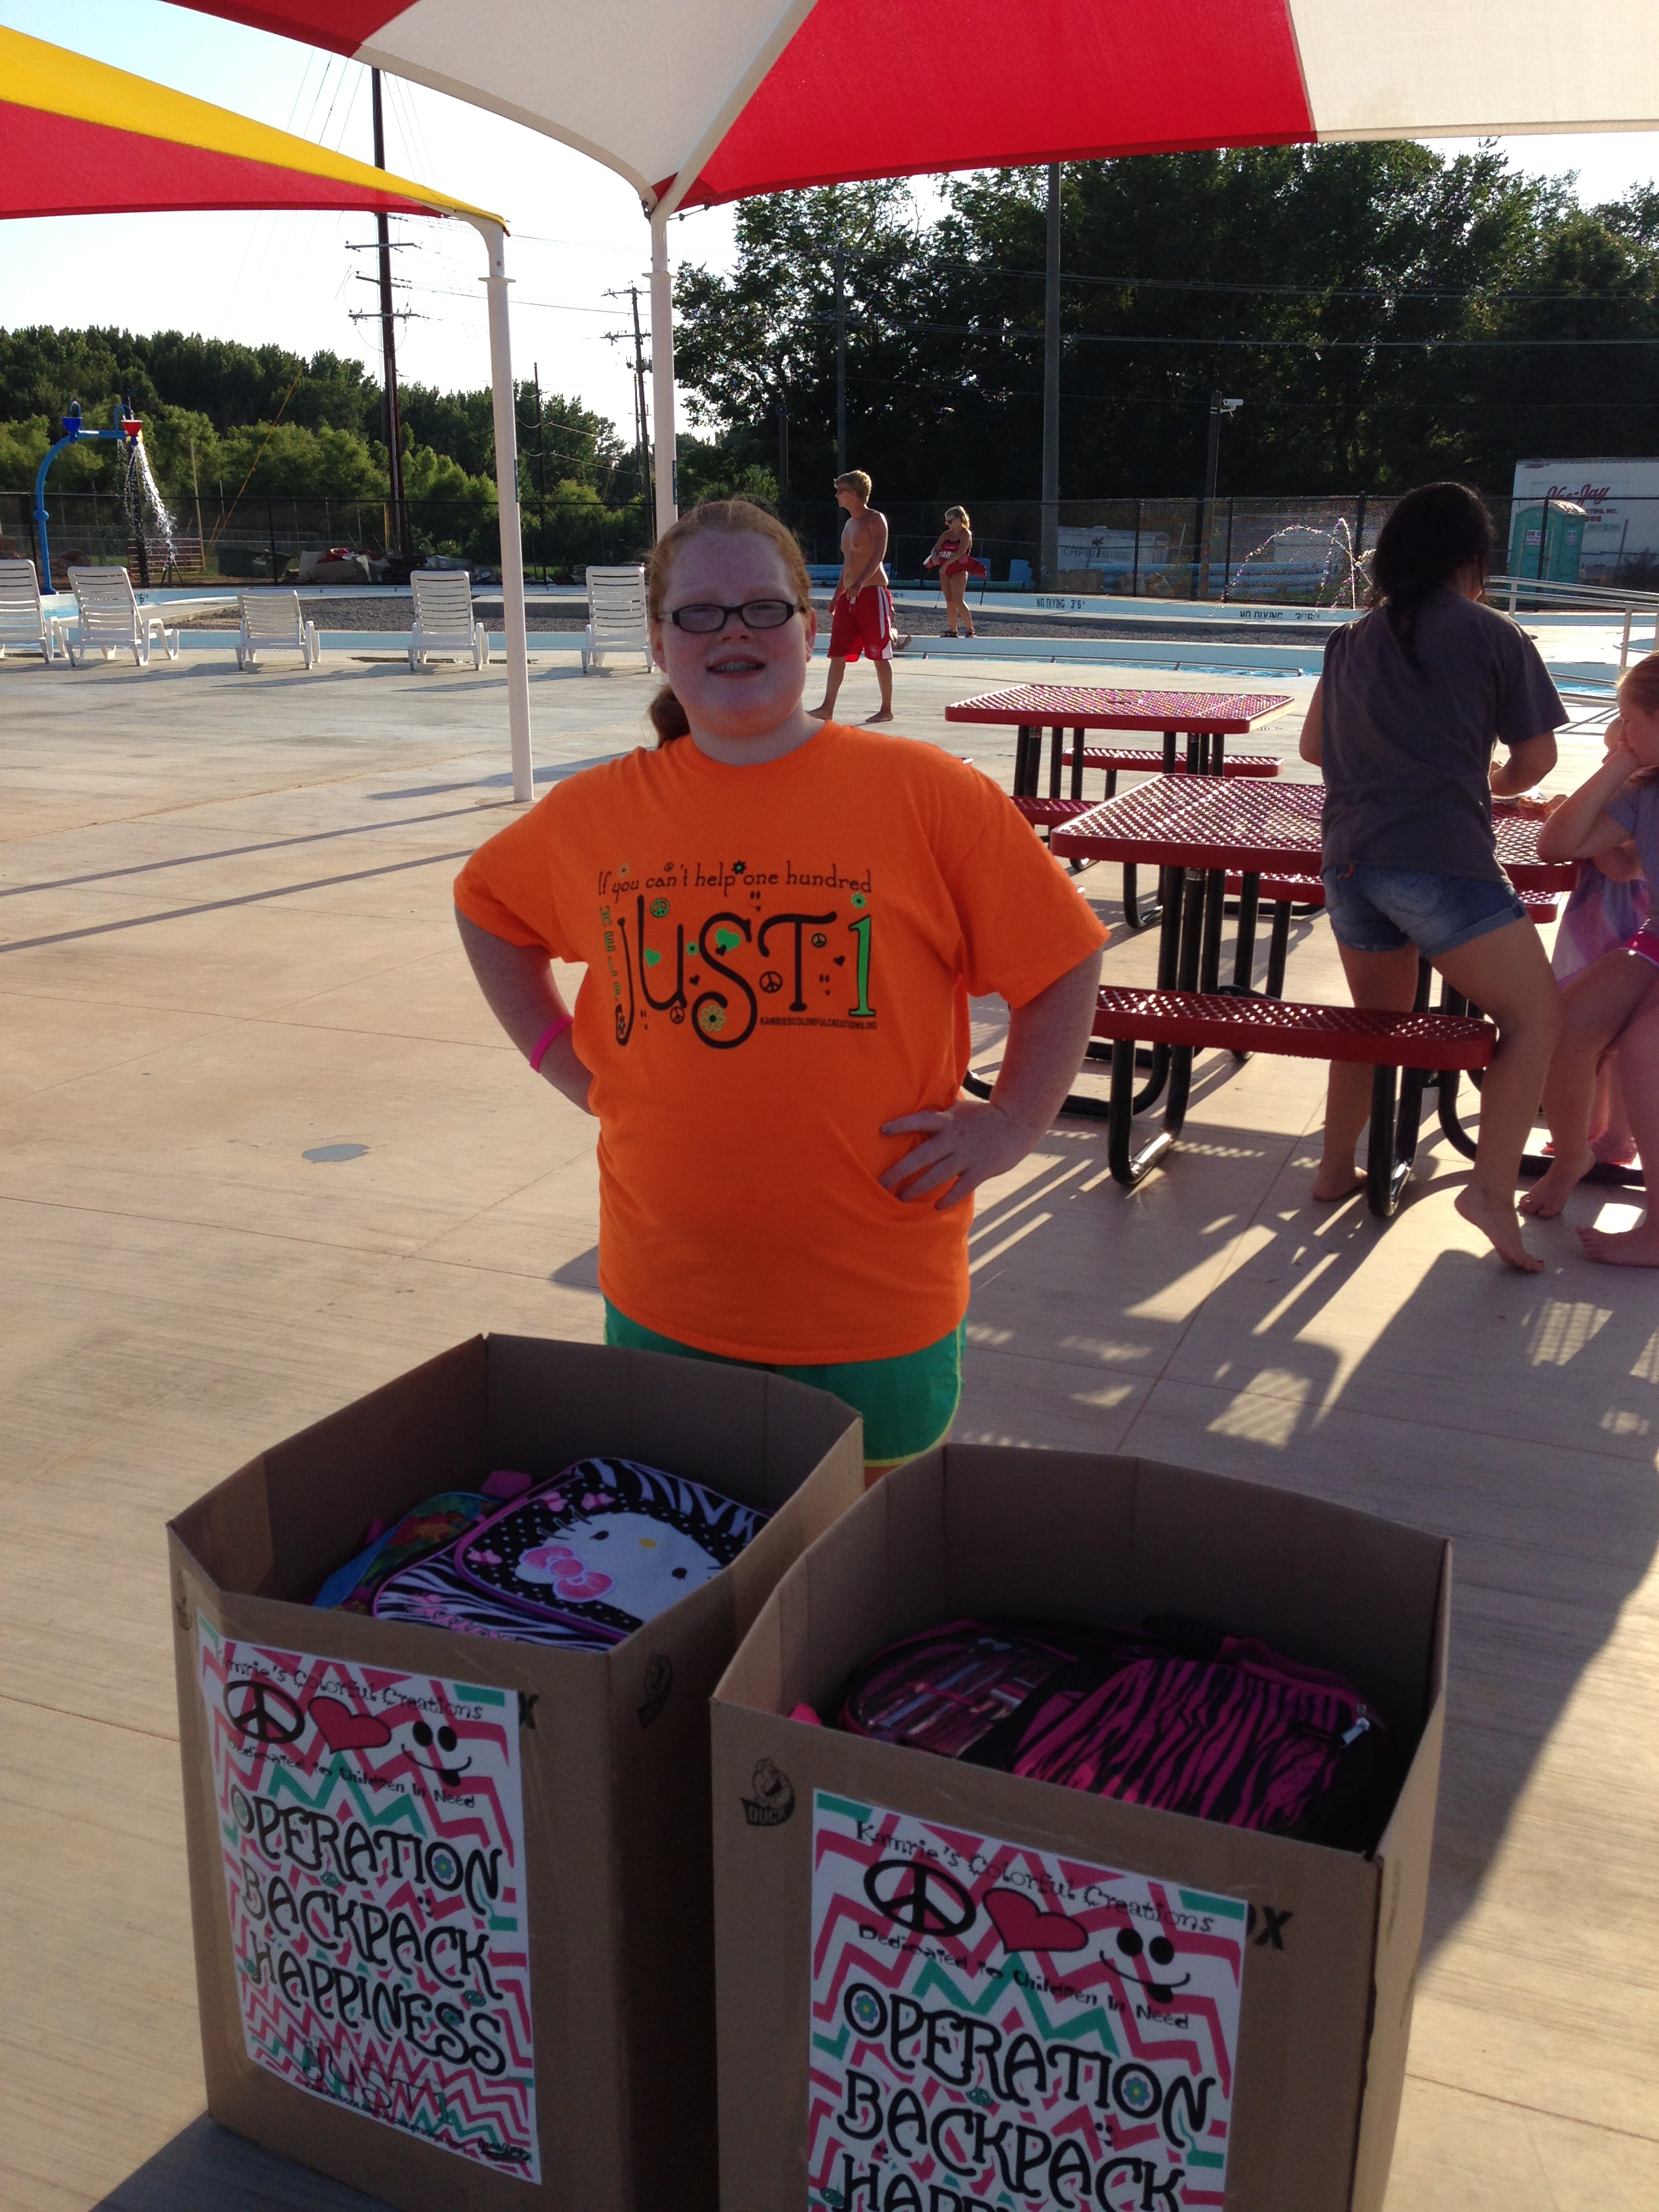 We took the backpacks to a waterpark day that our church provided for The CALL. She was able to donate over 60 backpacks to foster kids this evening!